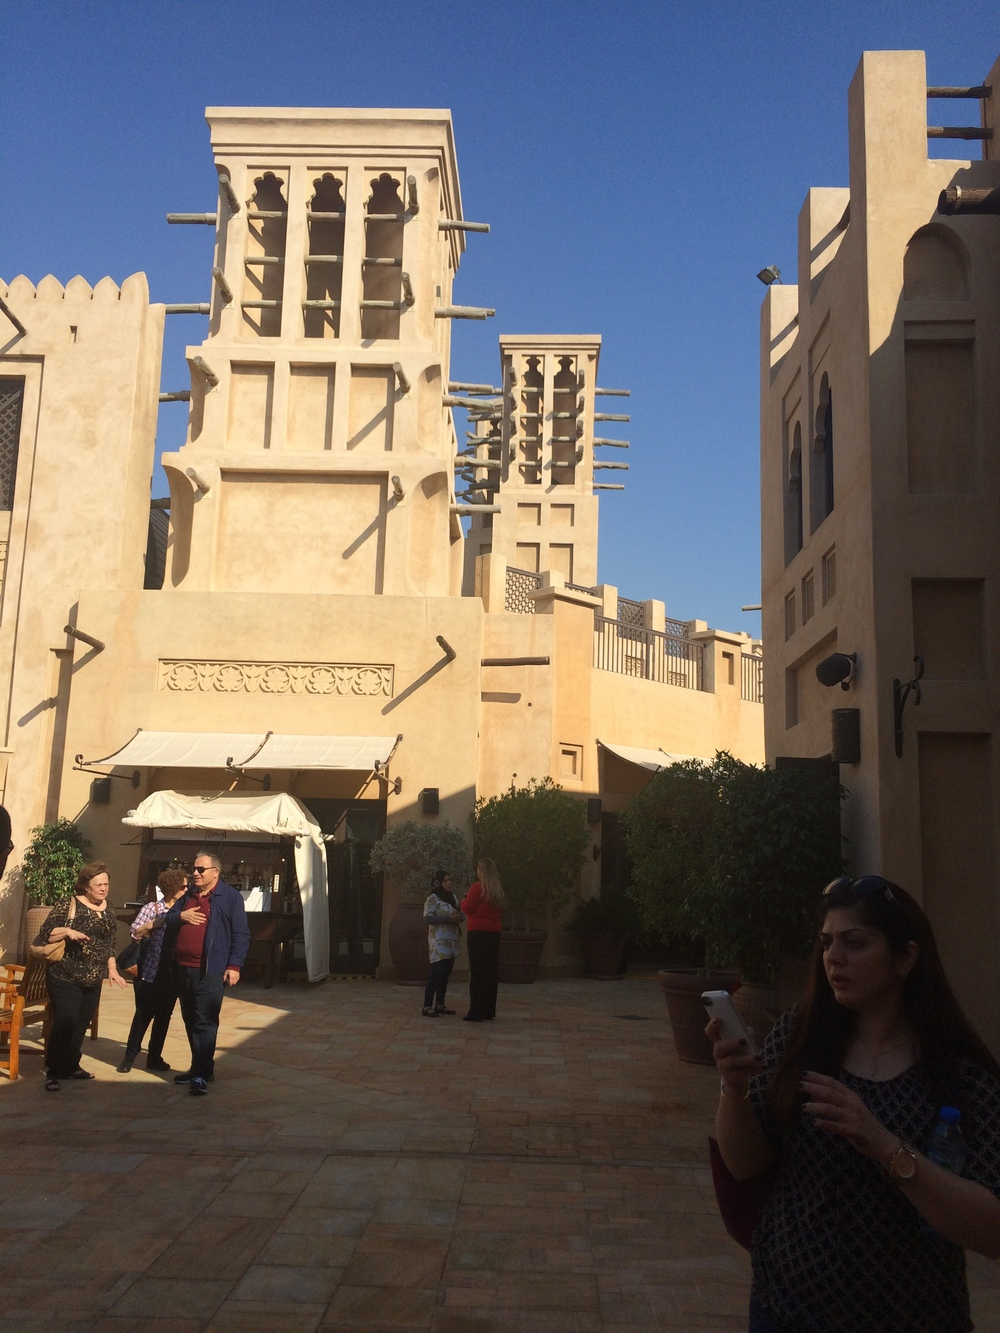 Another Souk featuring traditional architecture. The towers serve as natural ventilation systems.